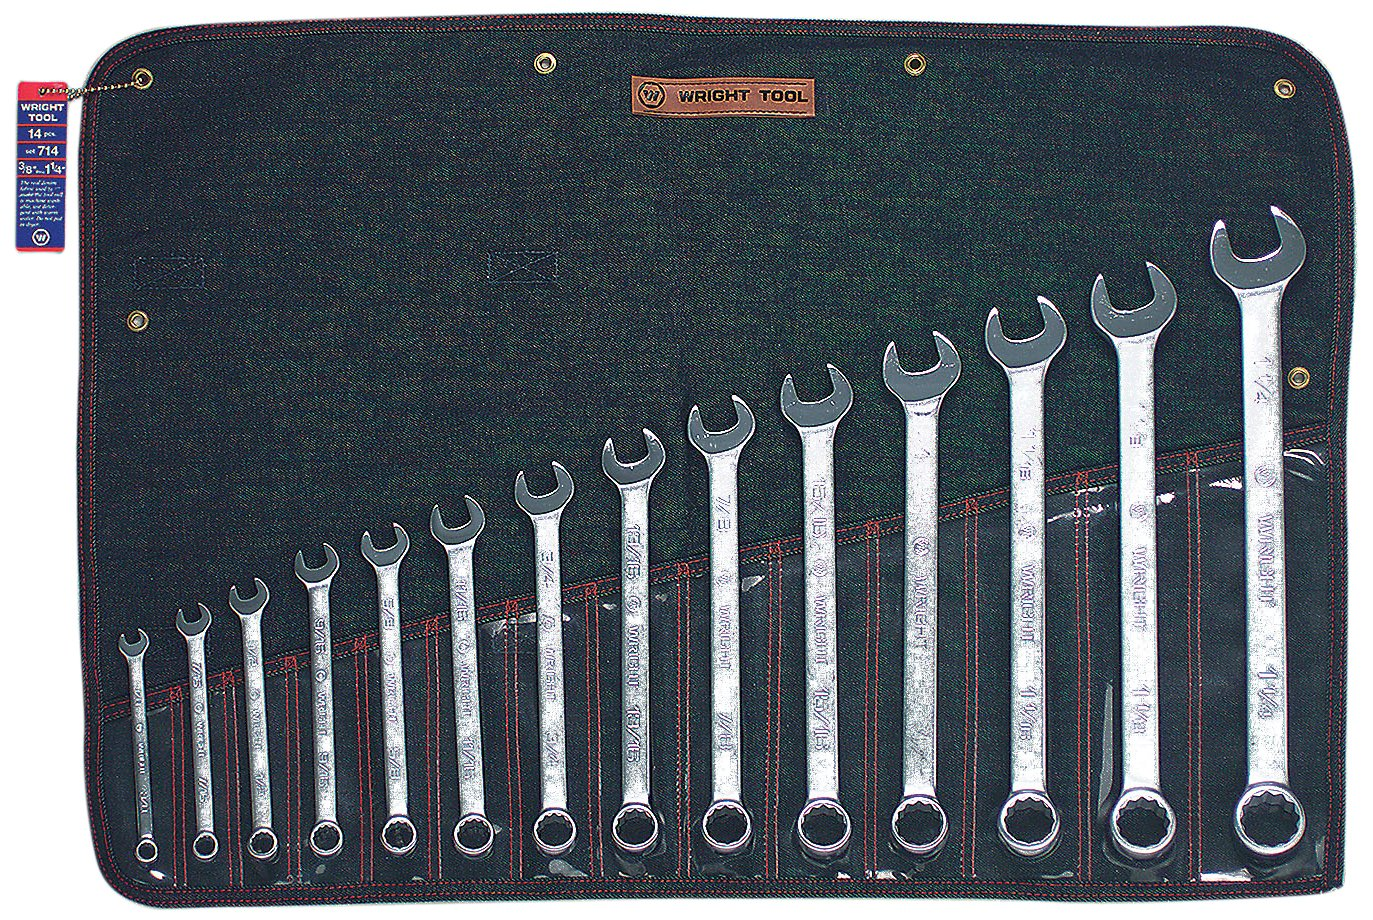 Wright Tool 714 Wrightgrip 14-Piece 12-Point Combination Wrench Set by Wright Tool  B001HW8AOI